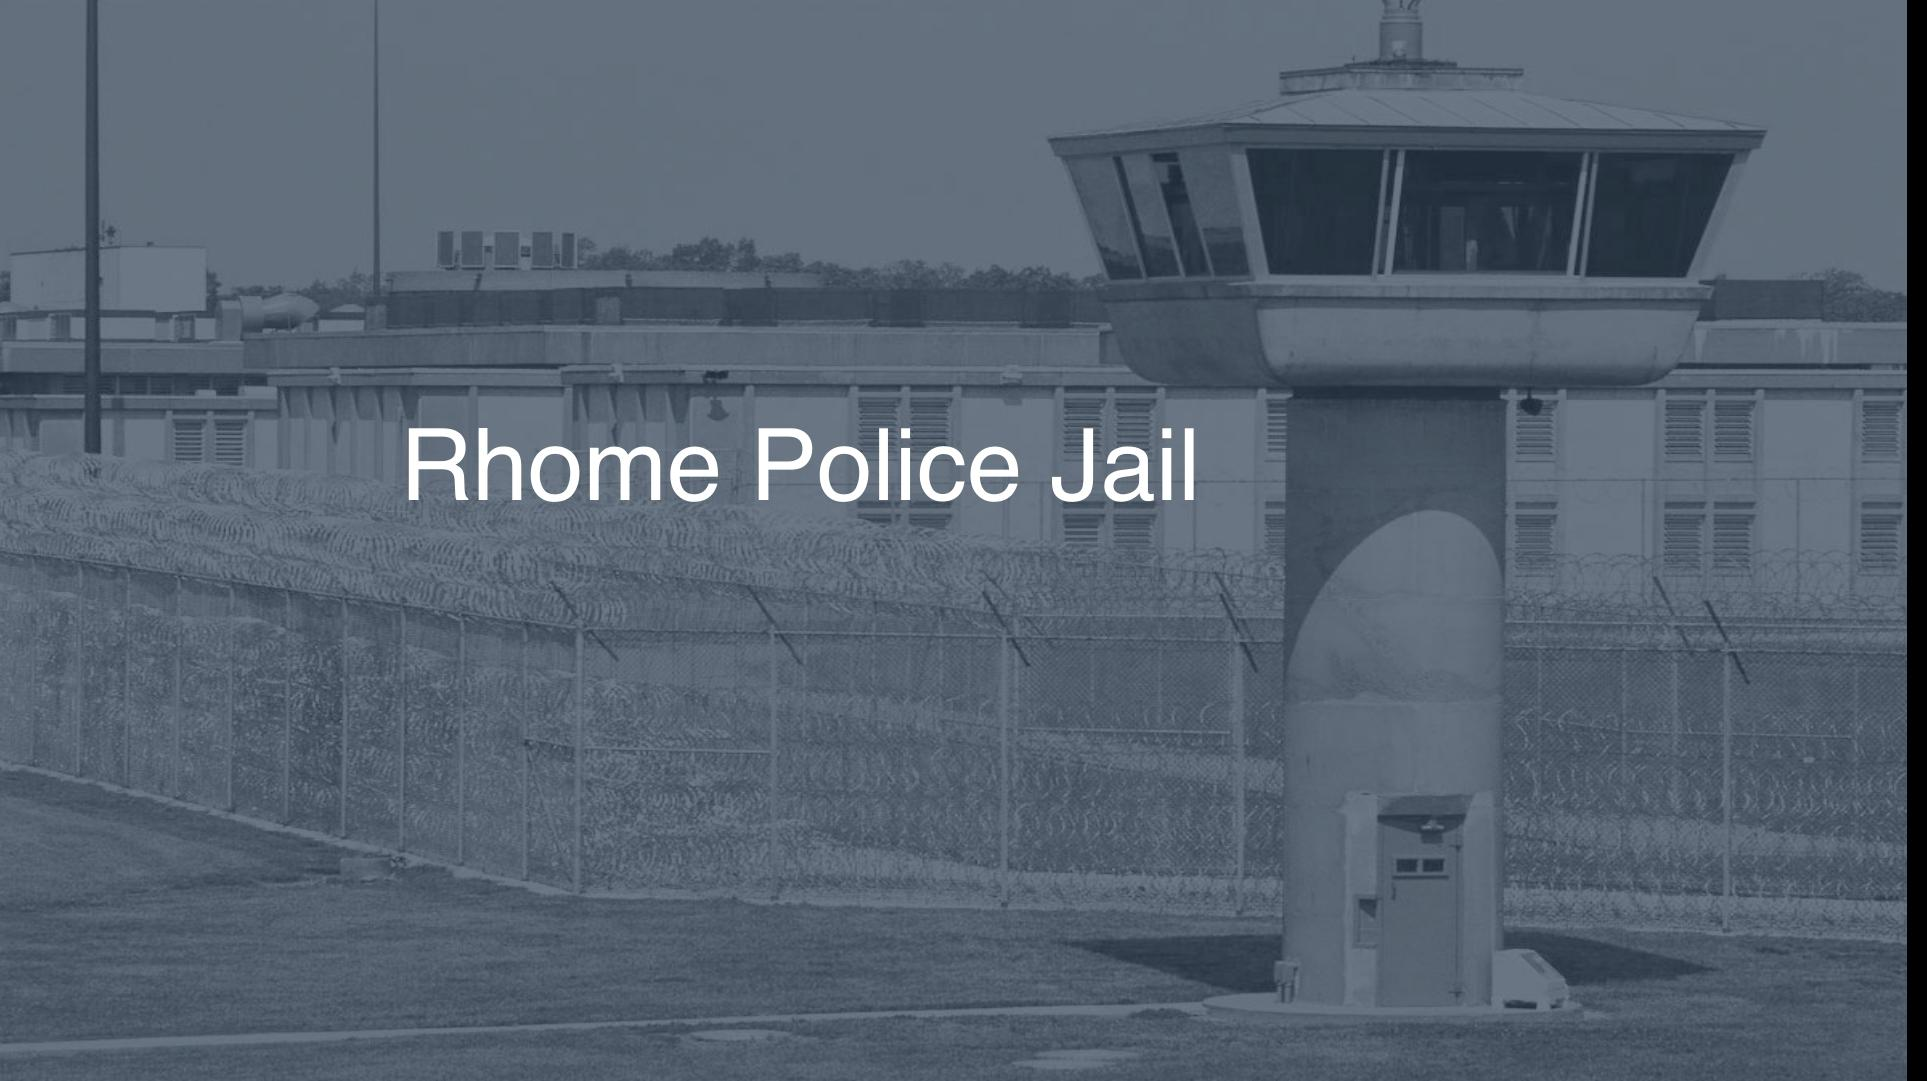 Rhome Police Jail correctional facility picture